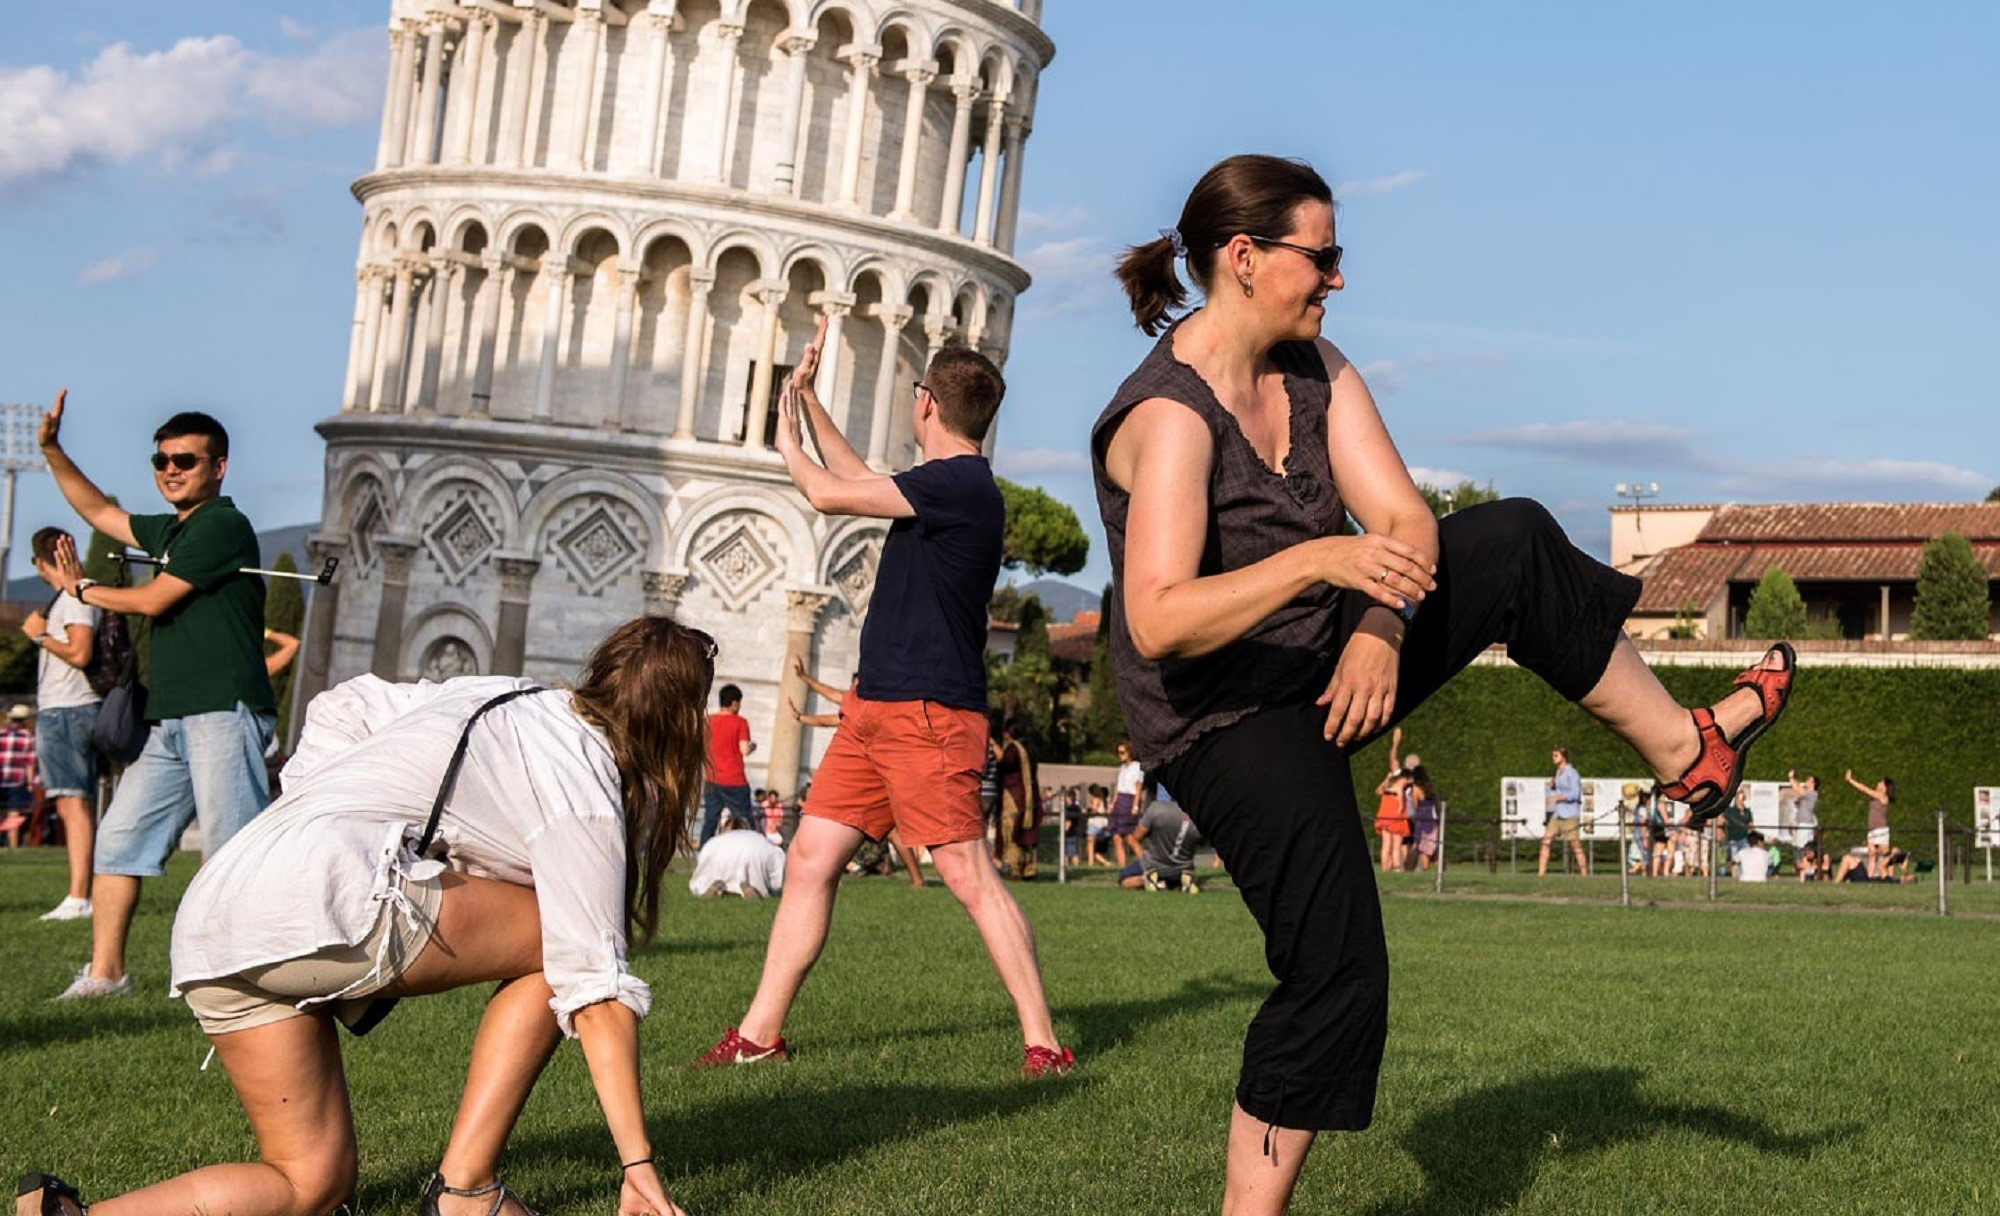 How to get the best Leaning Tower of Pisa Photo